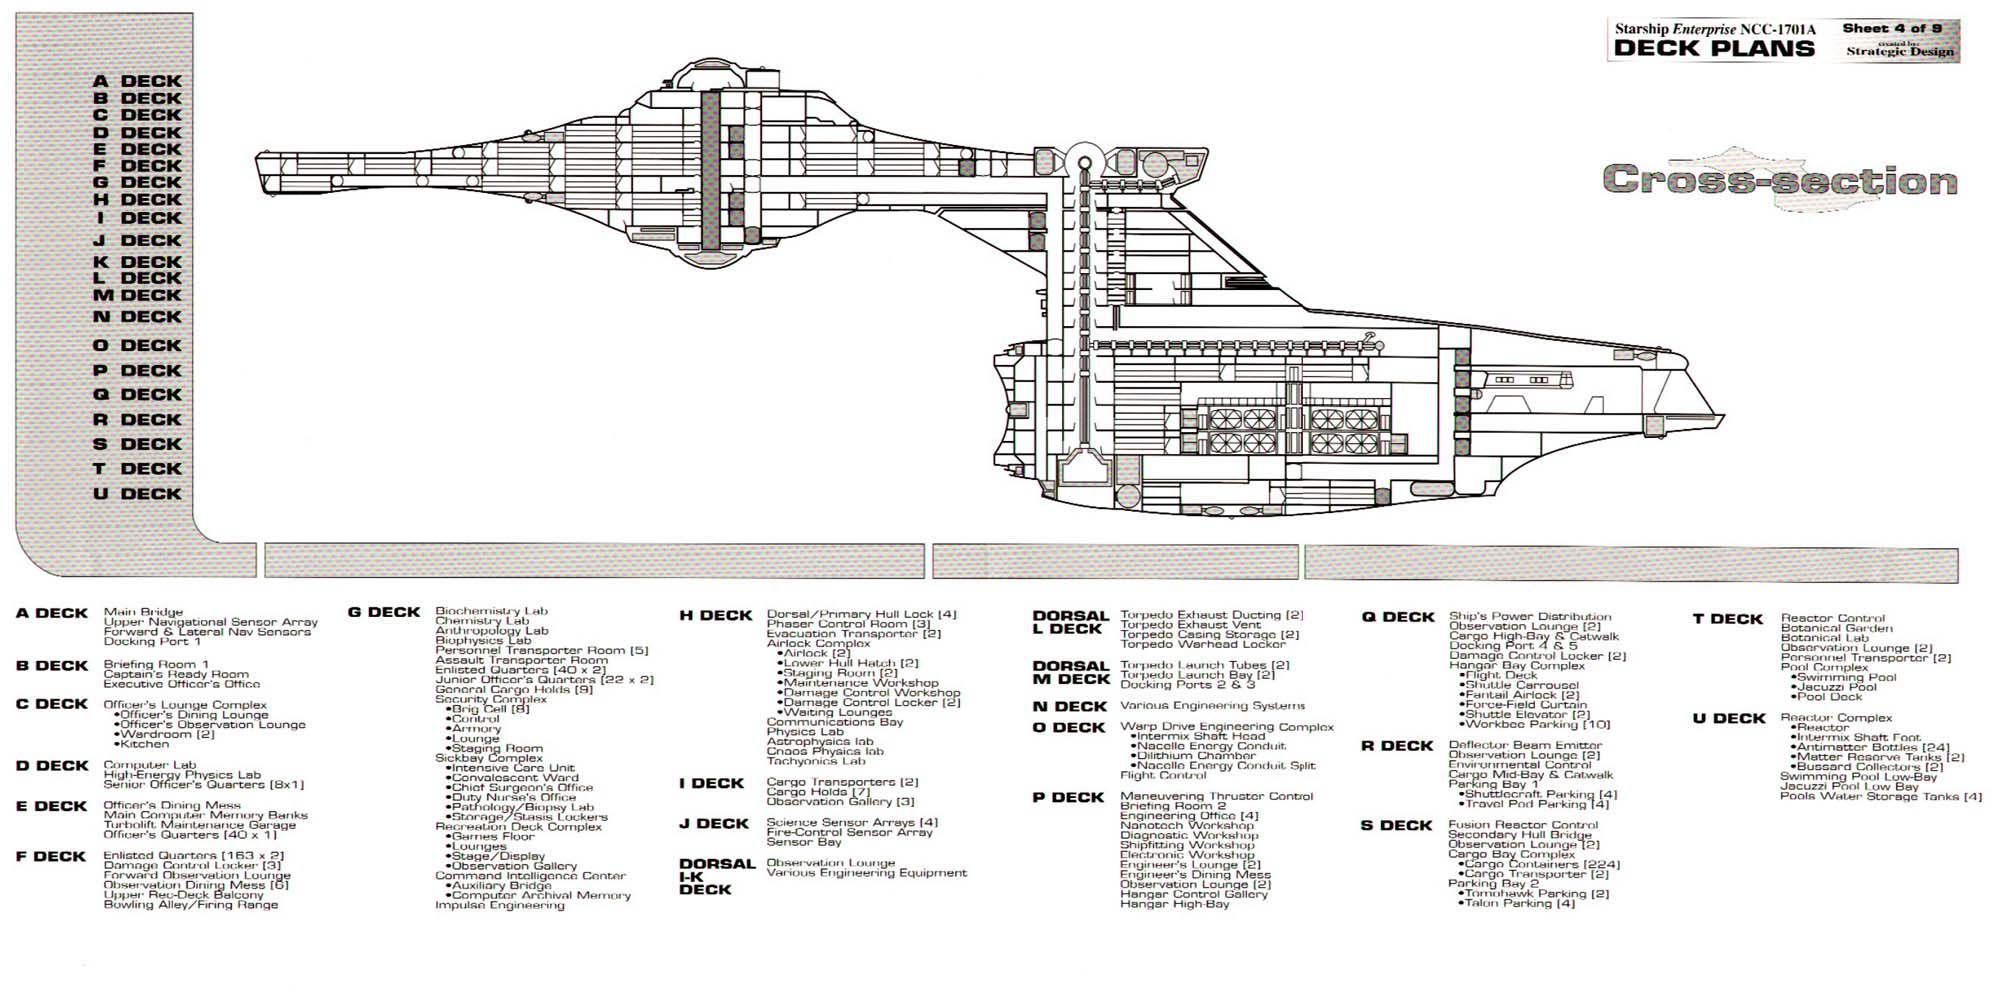 StarTrek Ship Schematics & Blueprints | Alien Soup on